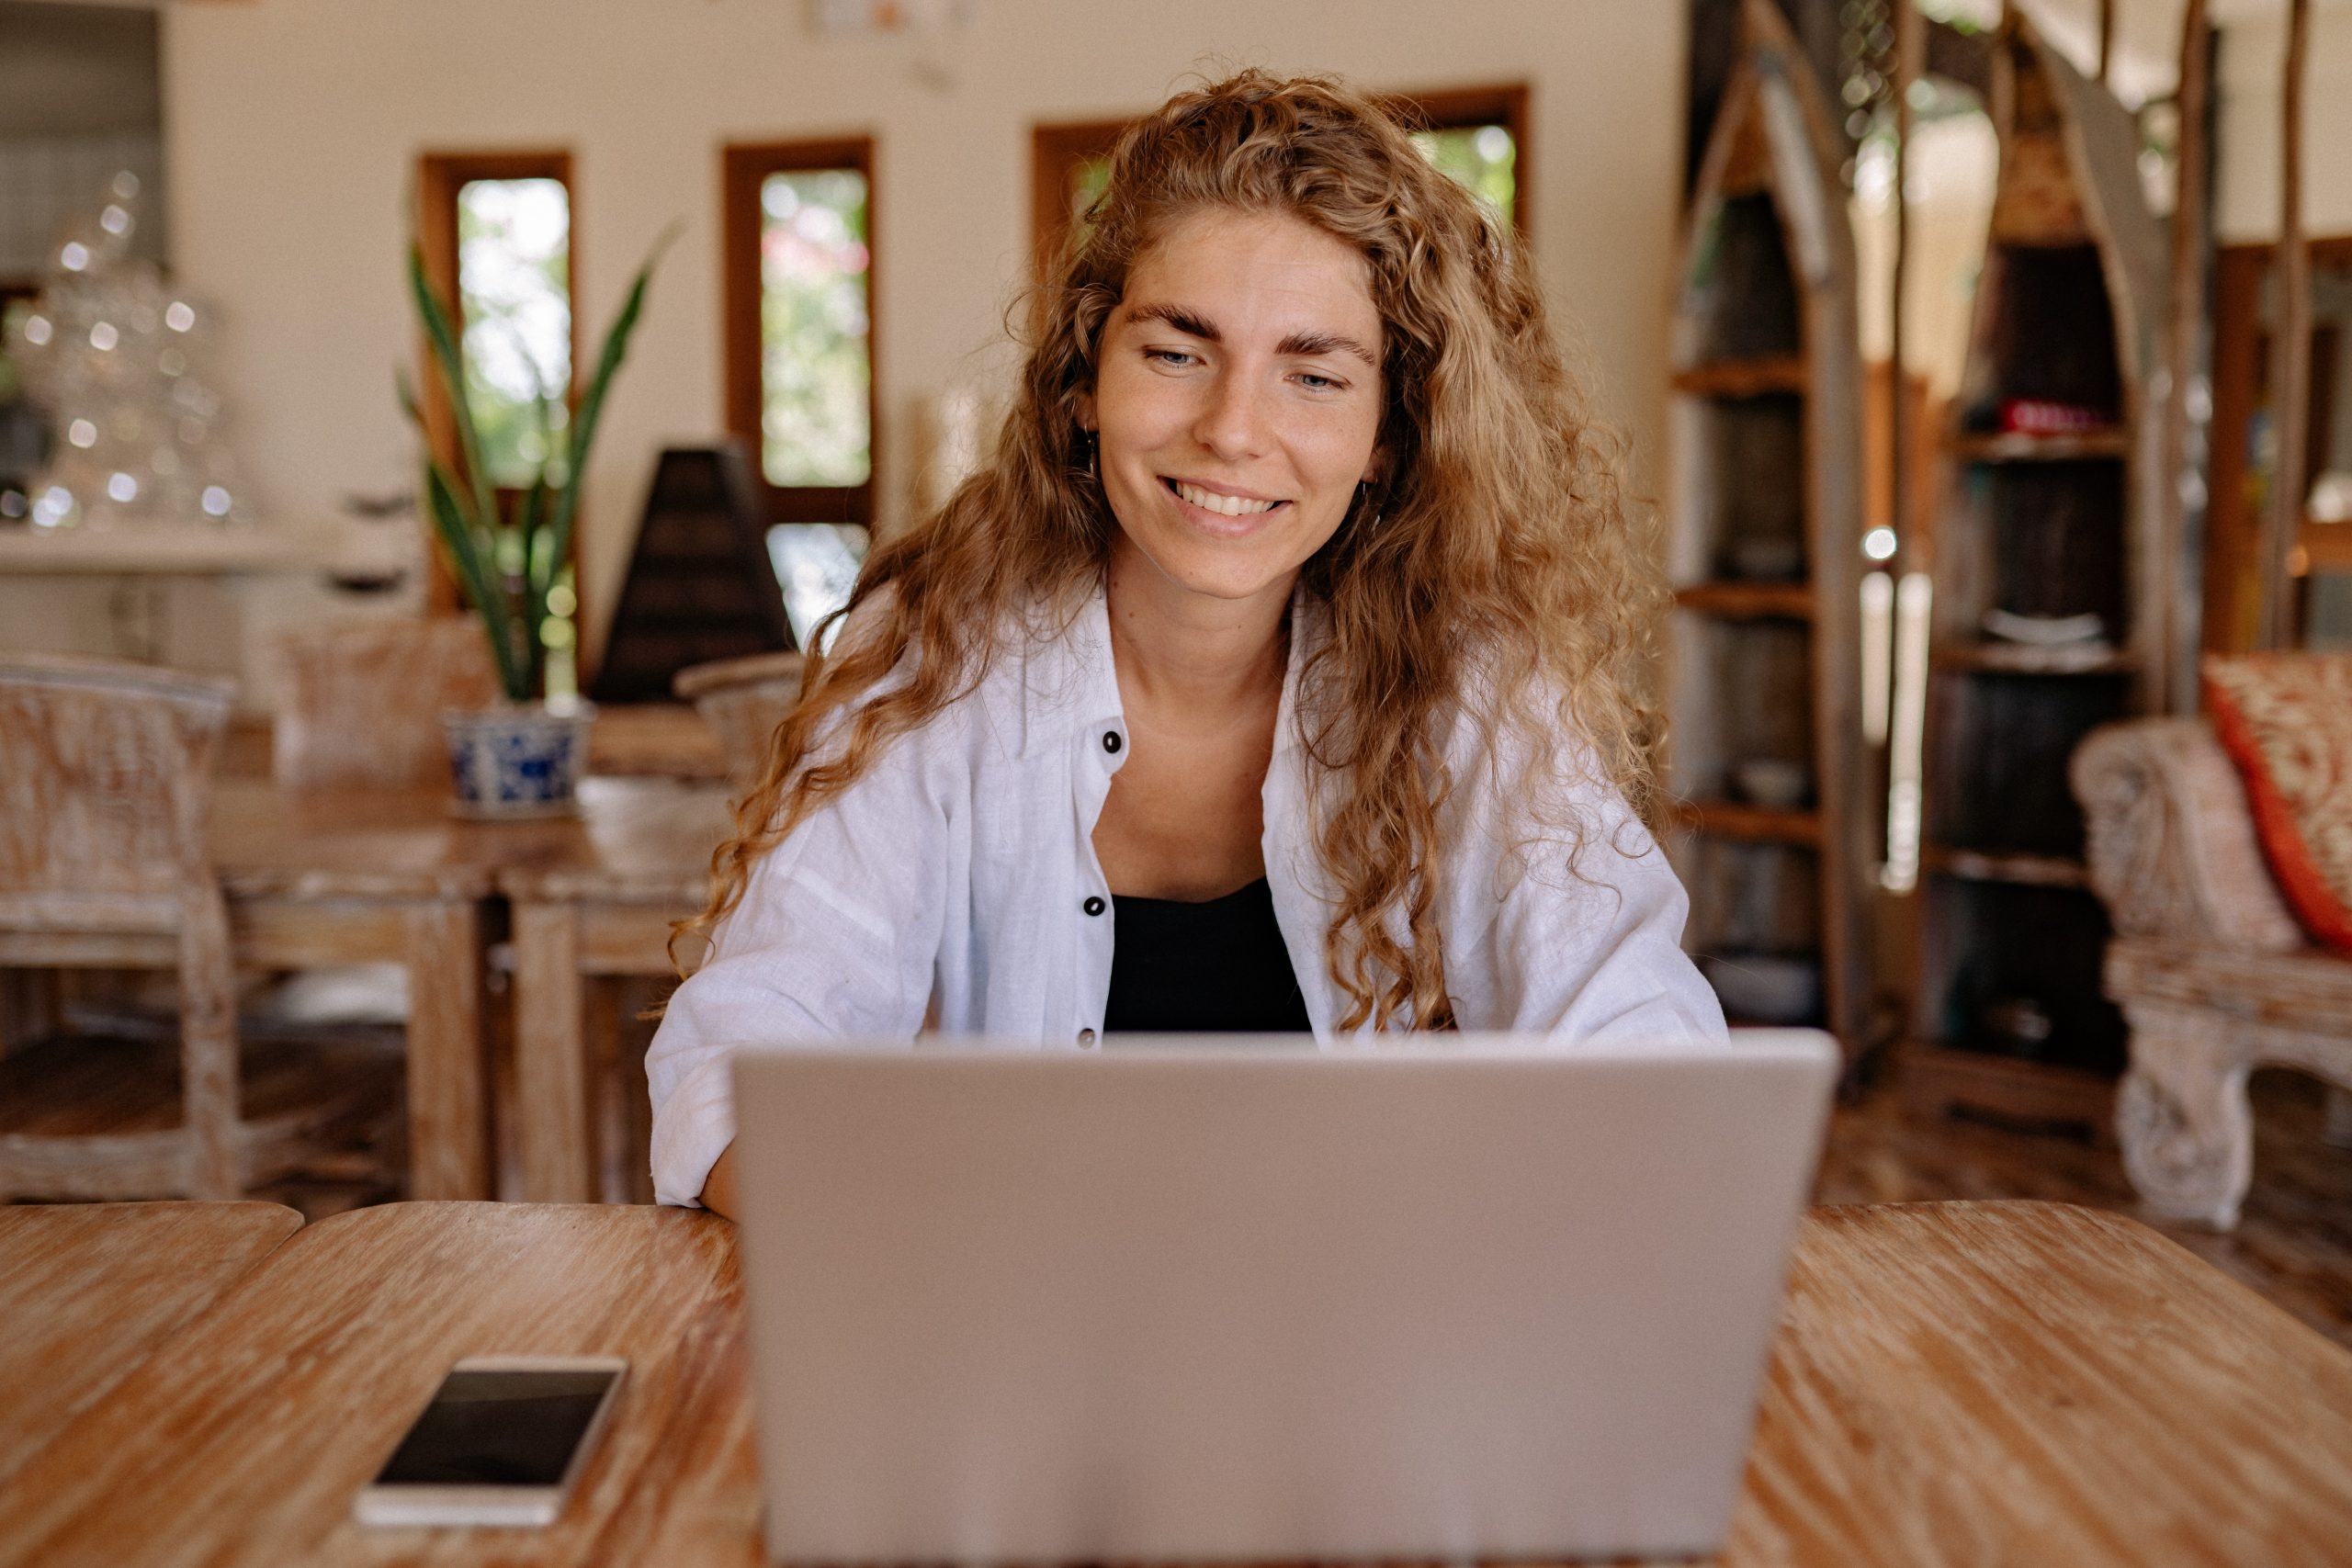 photo-of-woman-smiling-while-using-laptop